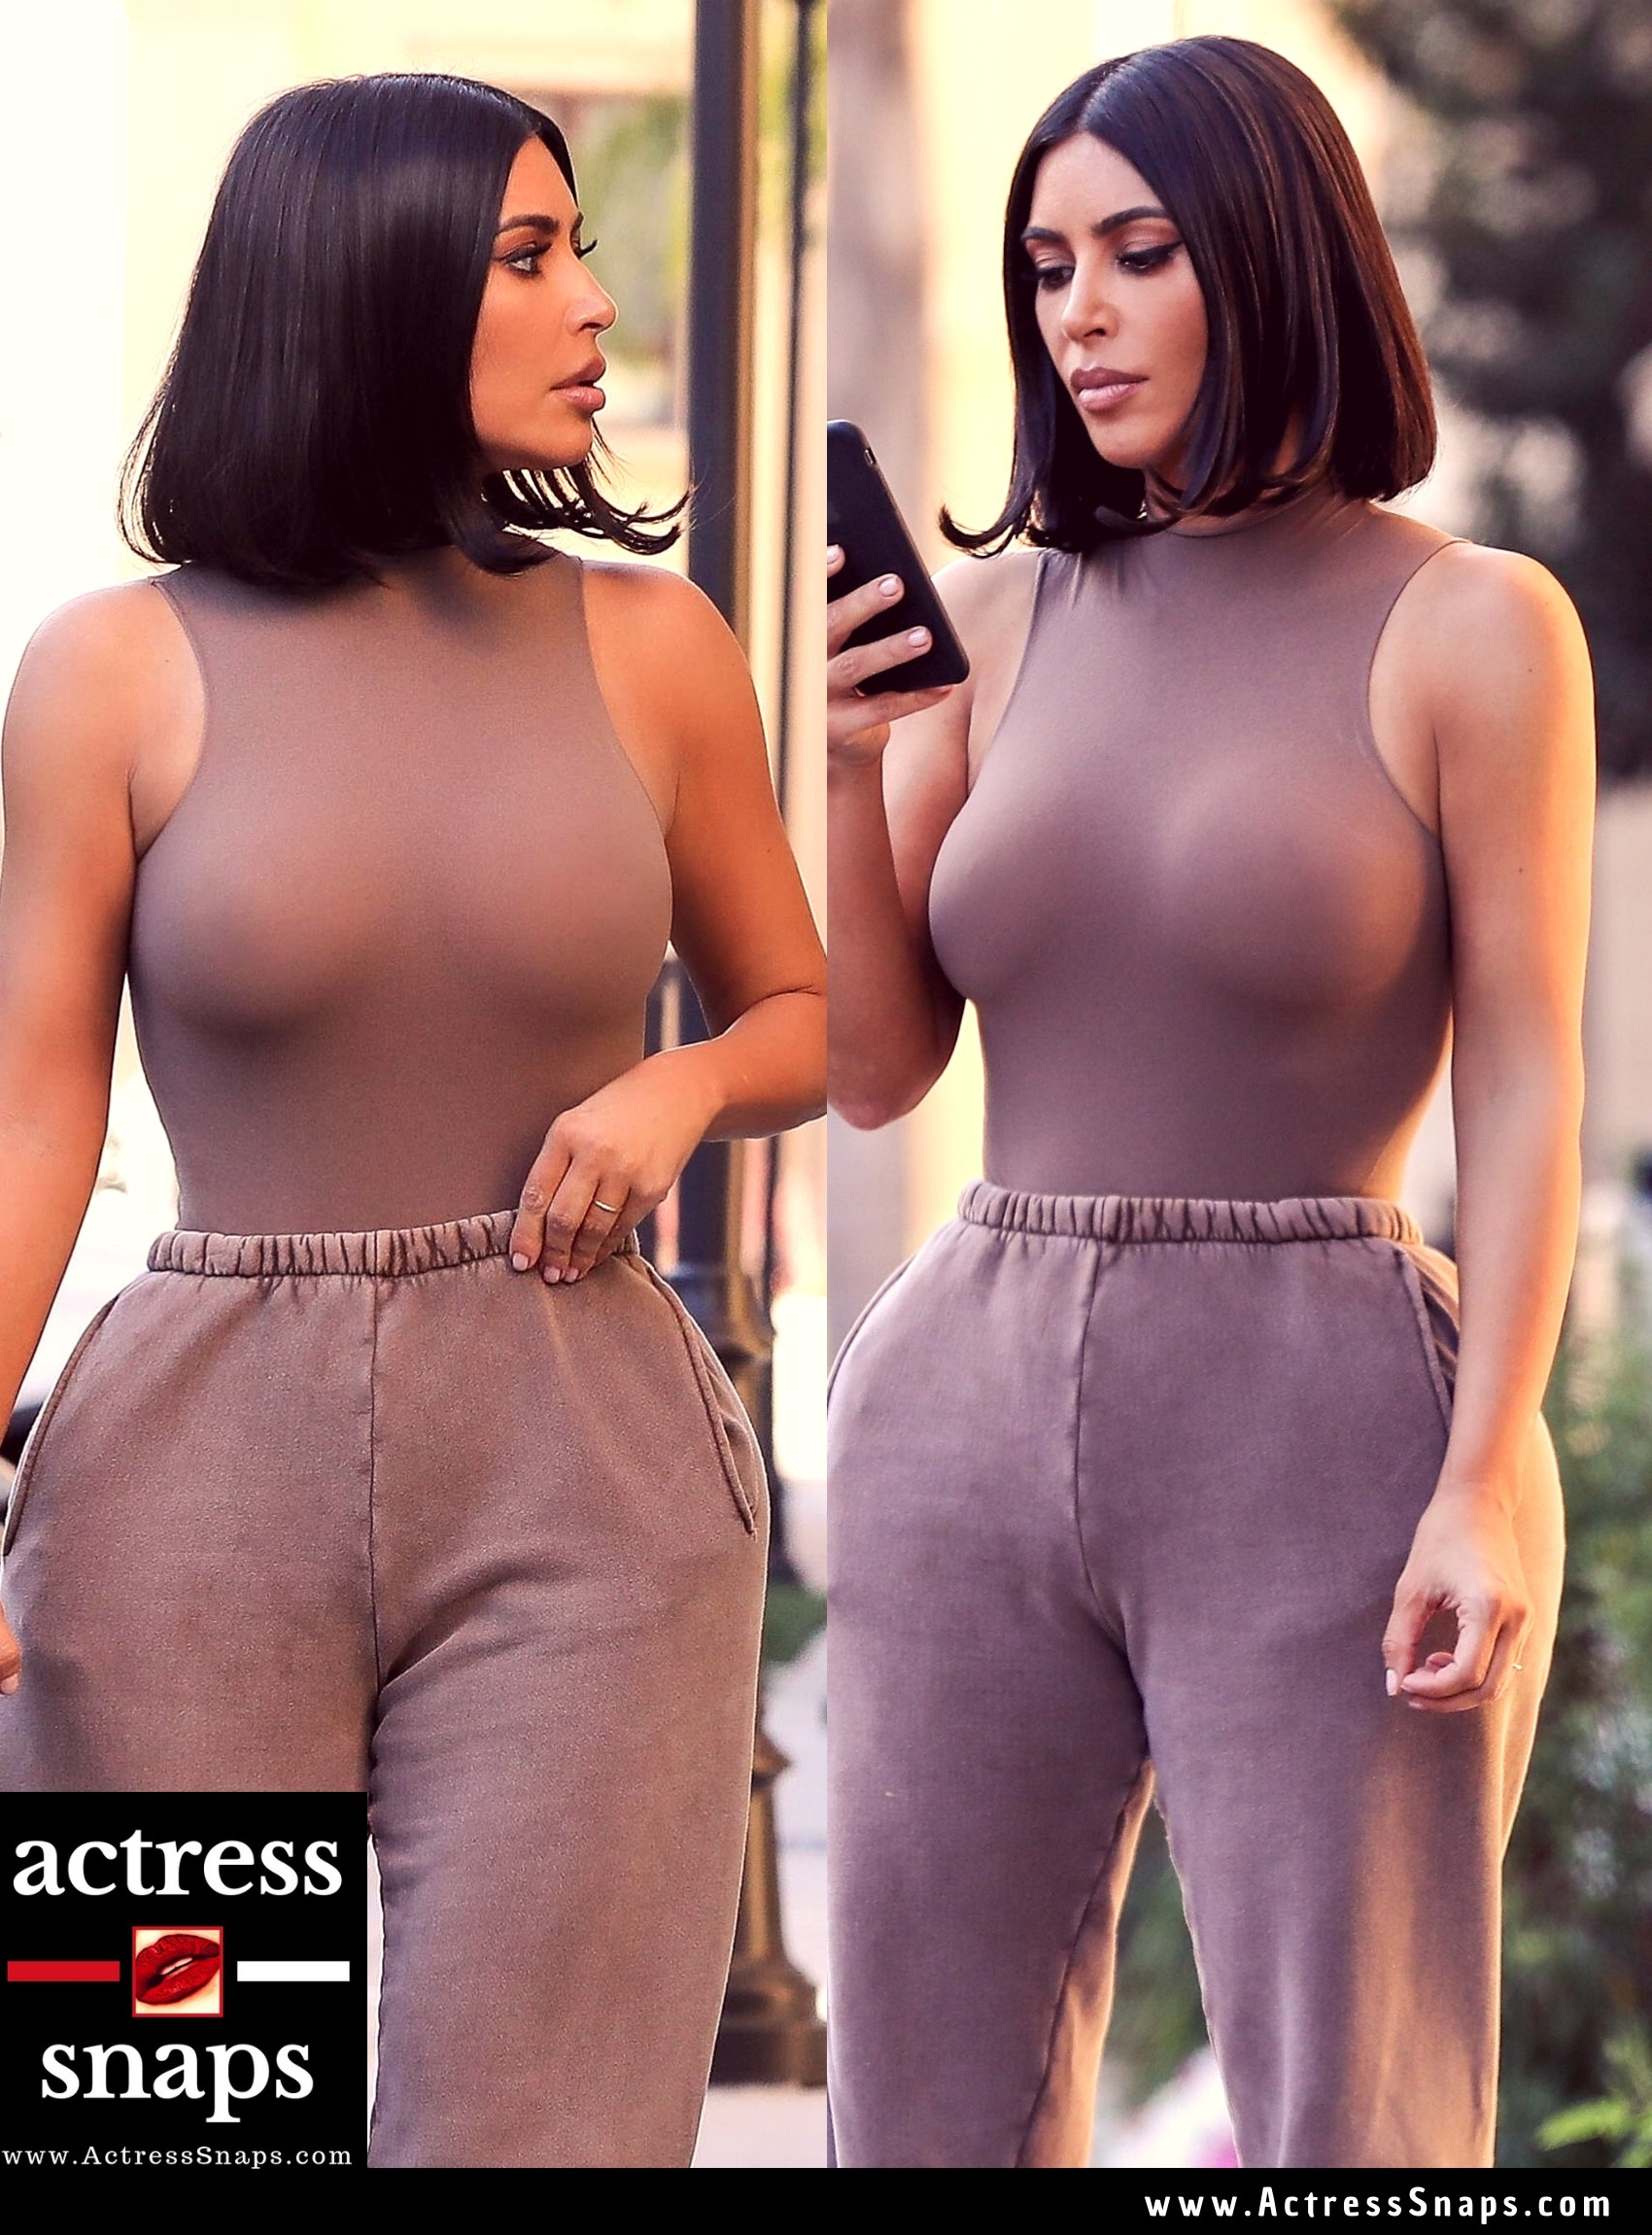 Latest Sexy Kim Kardashian Photos - Sexy Actress Pictures | Hot Actress Pictures - ActressSnaps.com